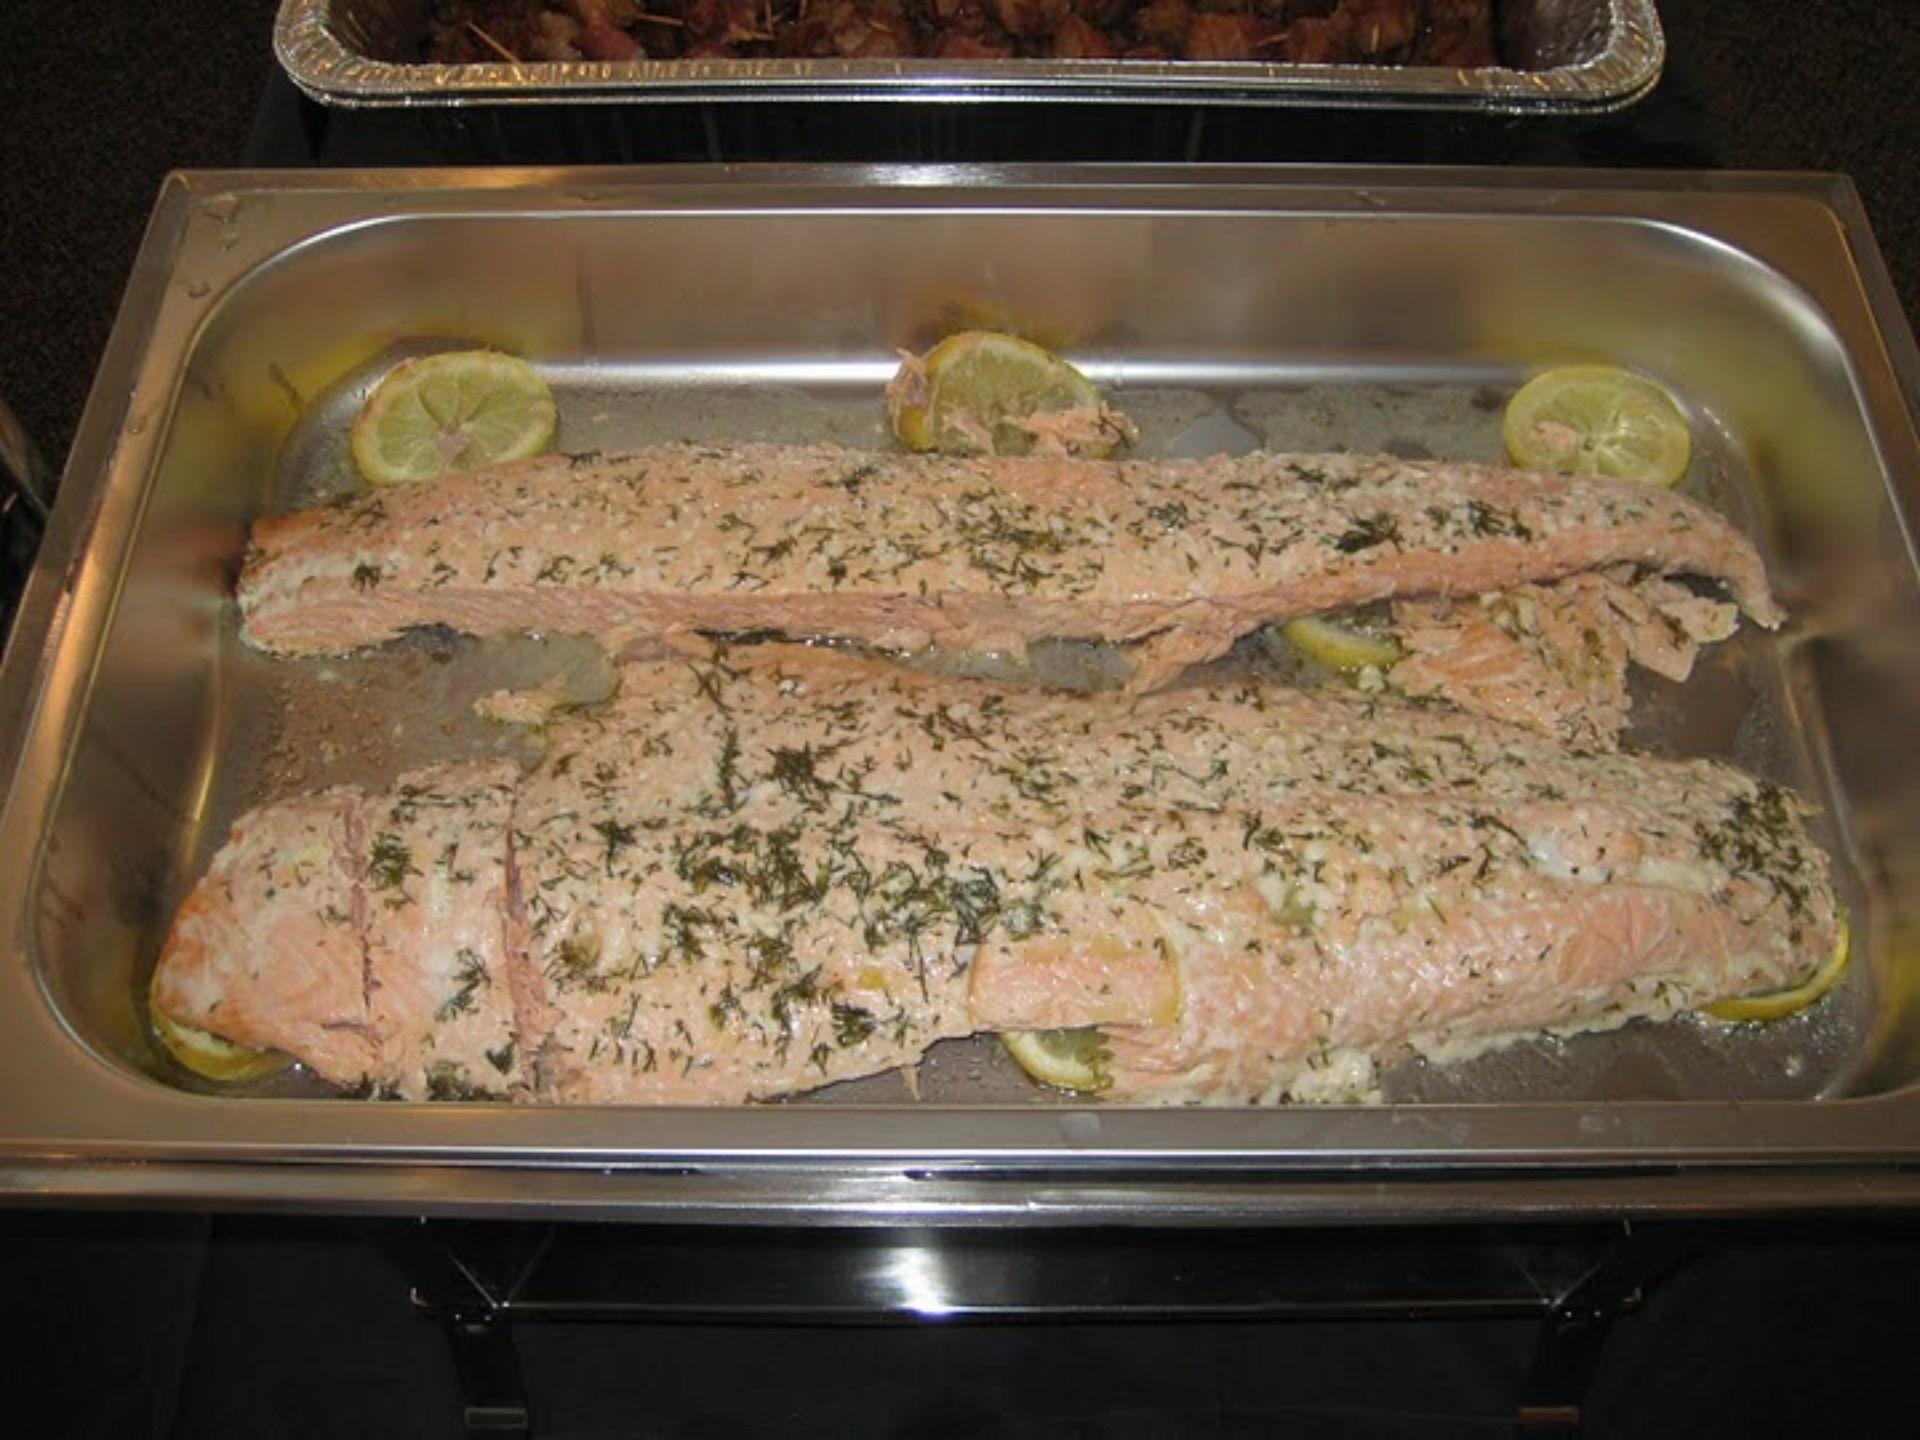 Baked salmon oreganata with lemon